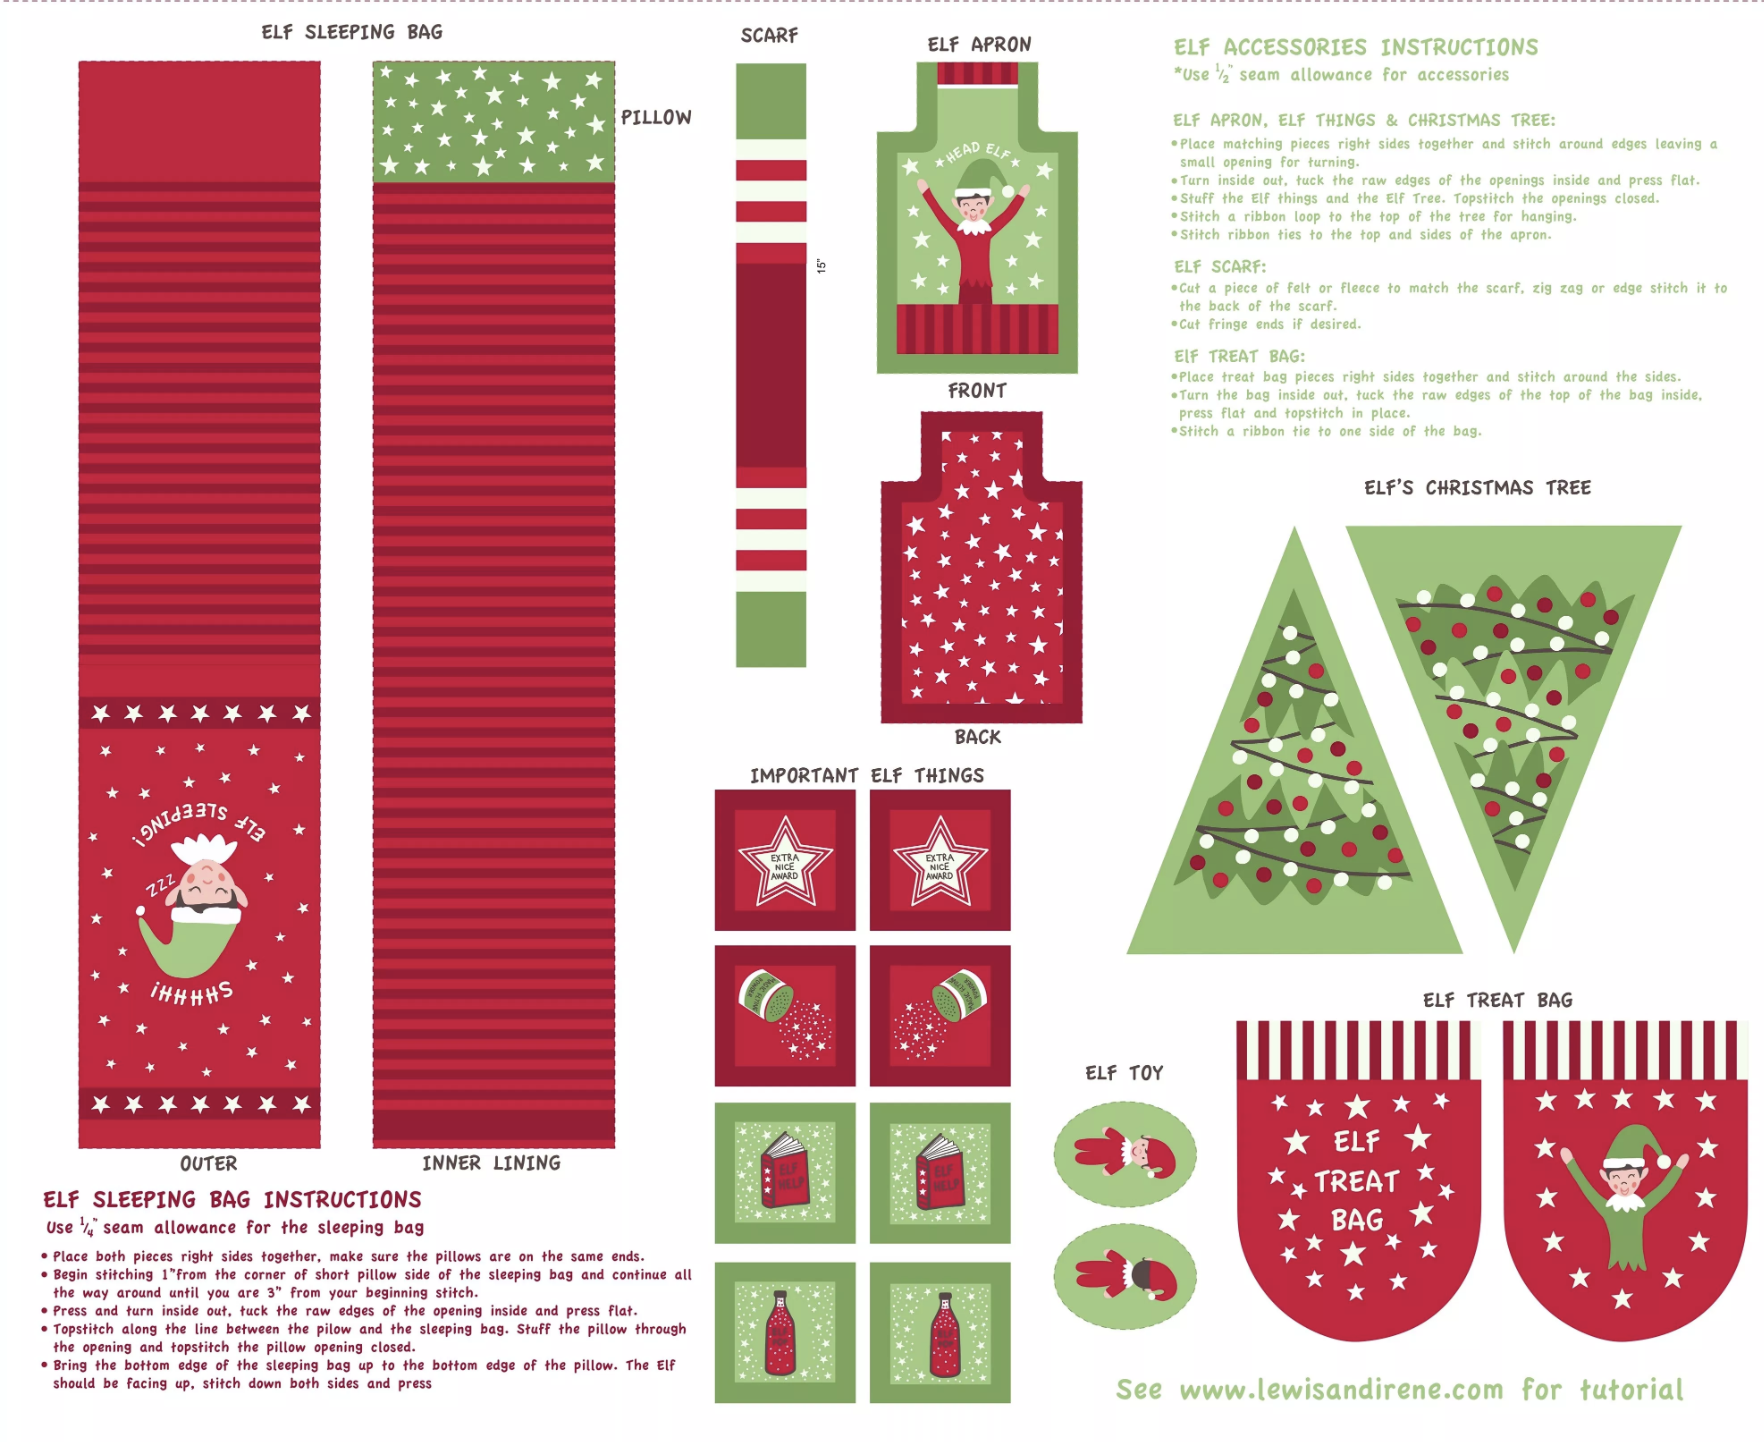 Lewis & Irene Christmas Glow - Elf Accessories Panel (Red)